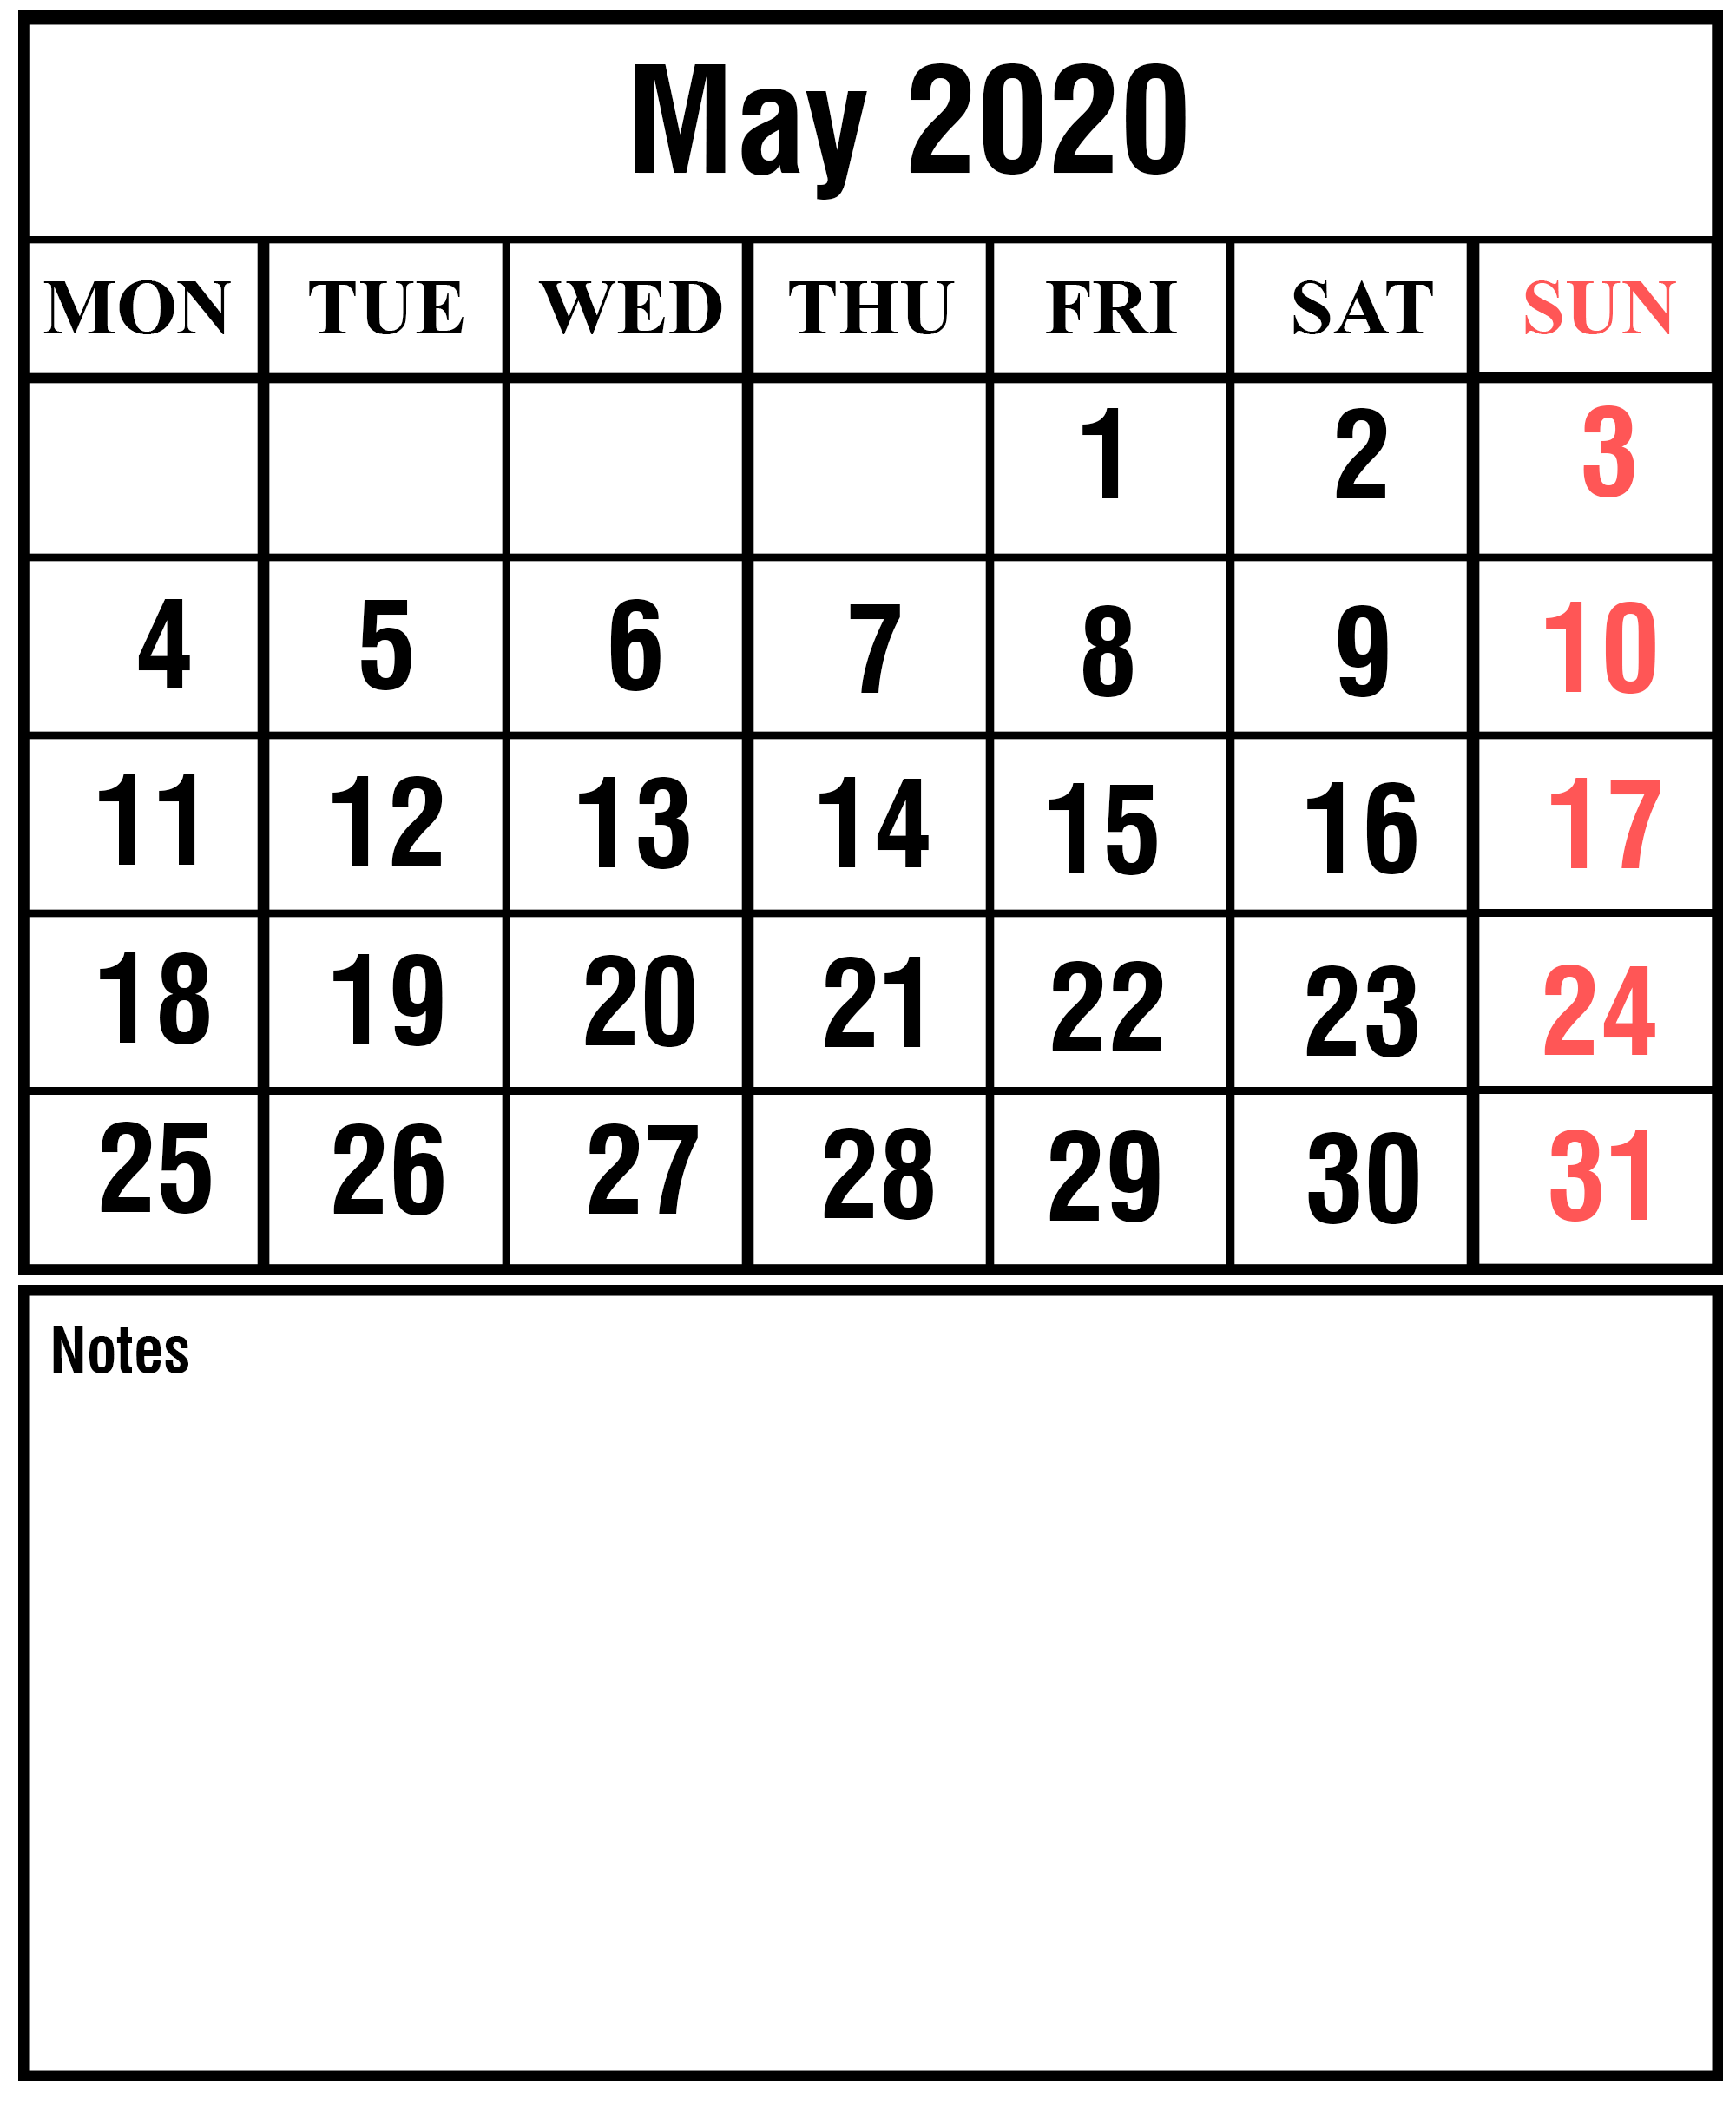 May 2020 Calendar With Holidays Template